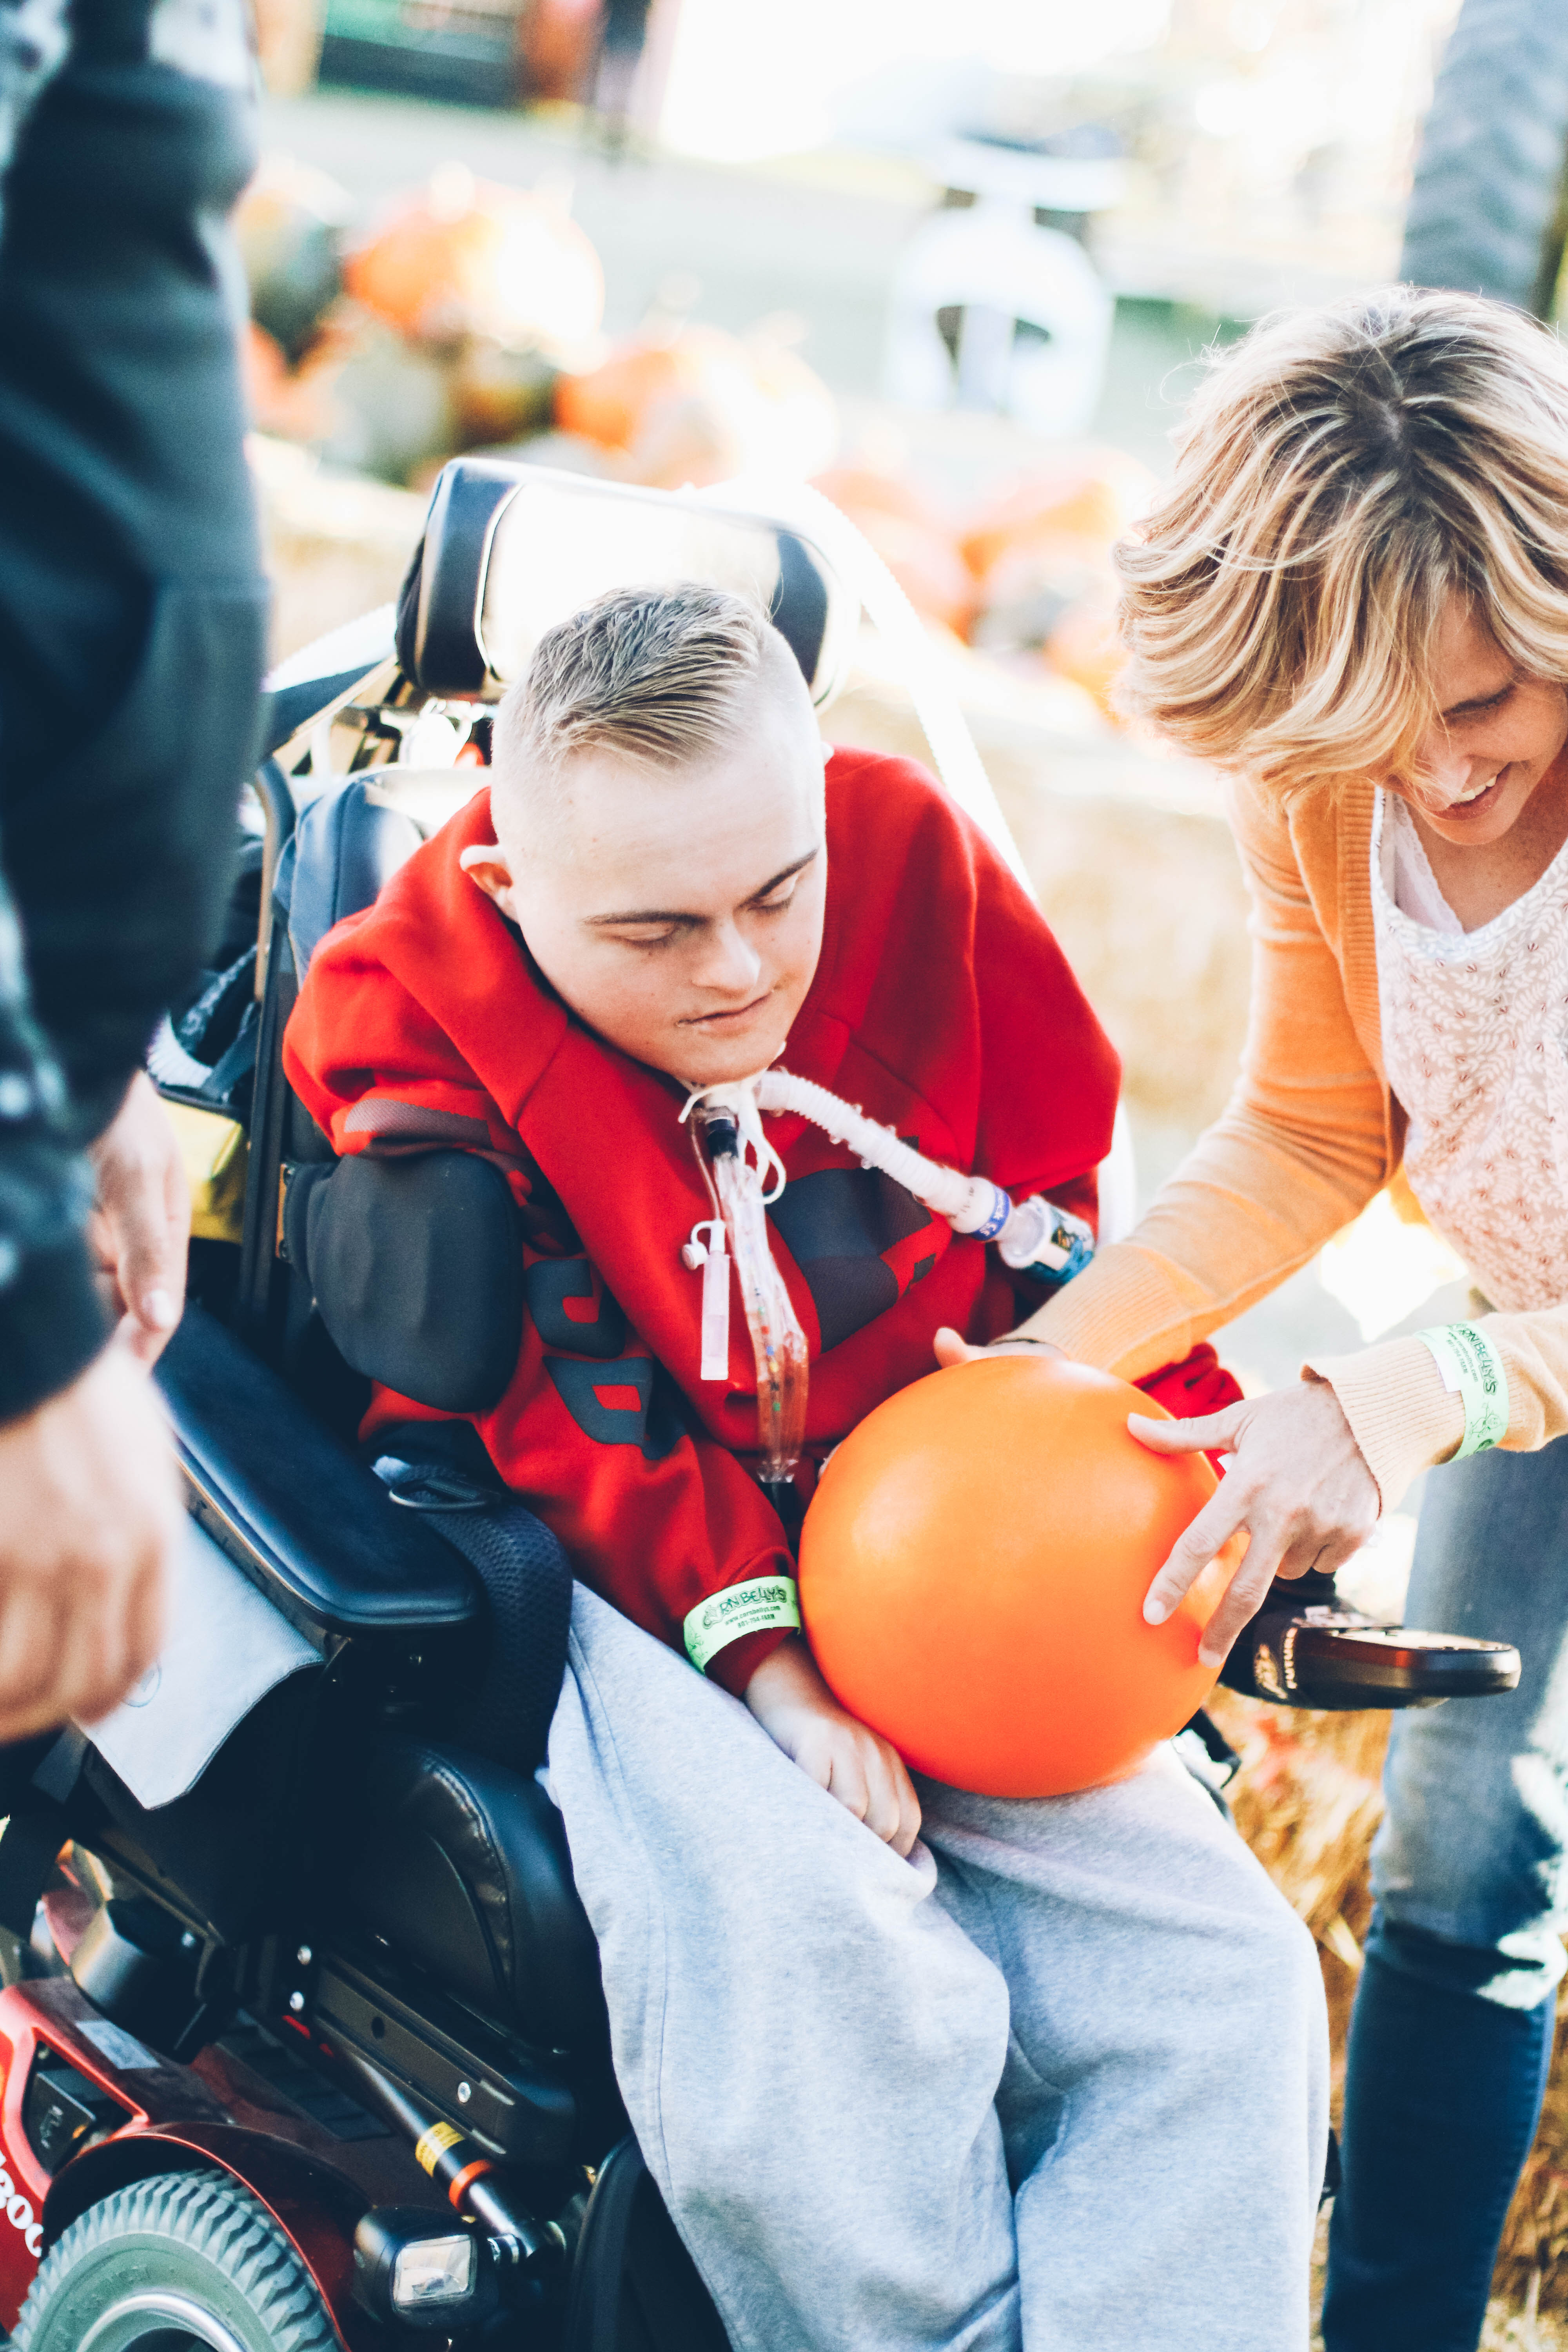 mom and special needs boy playing pumpkin bowling at corn maze